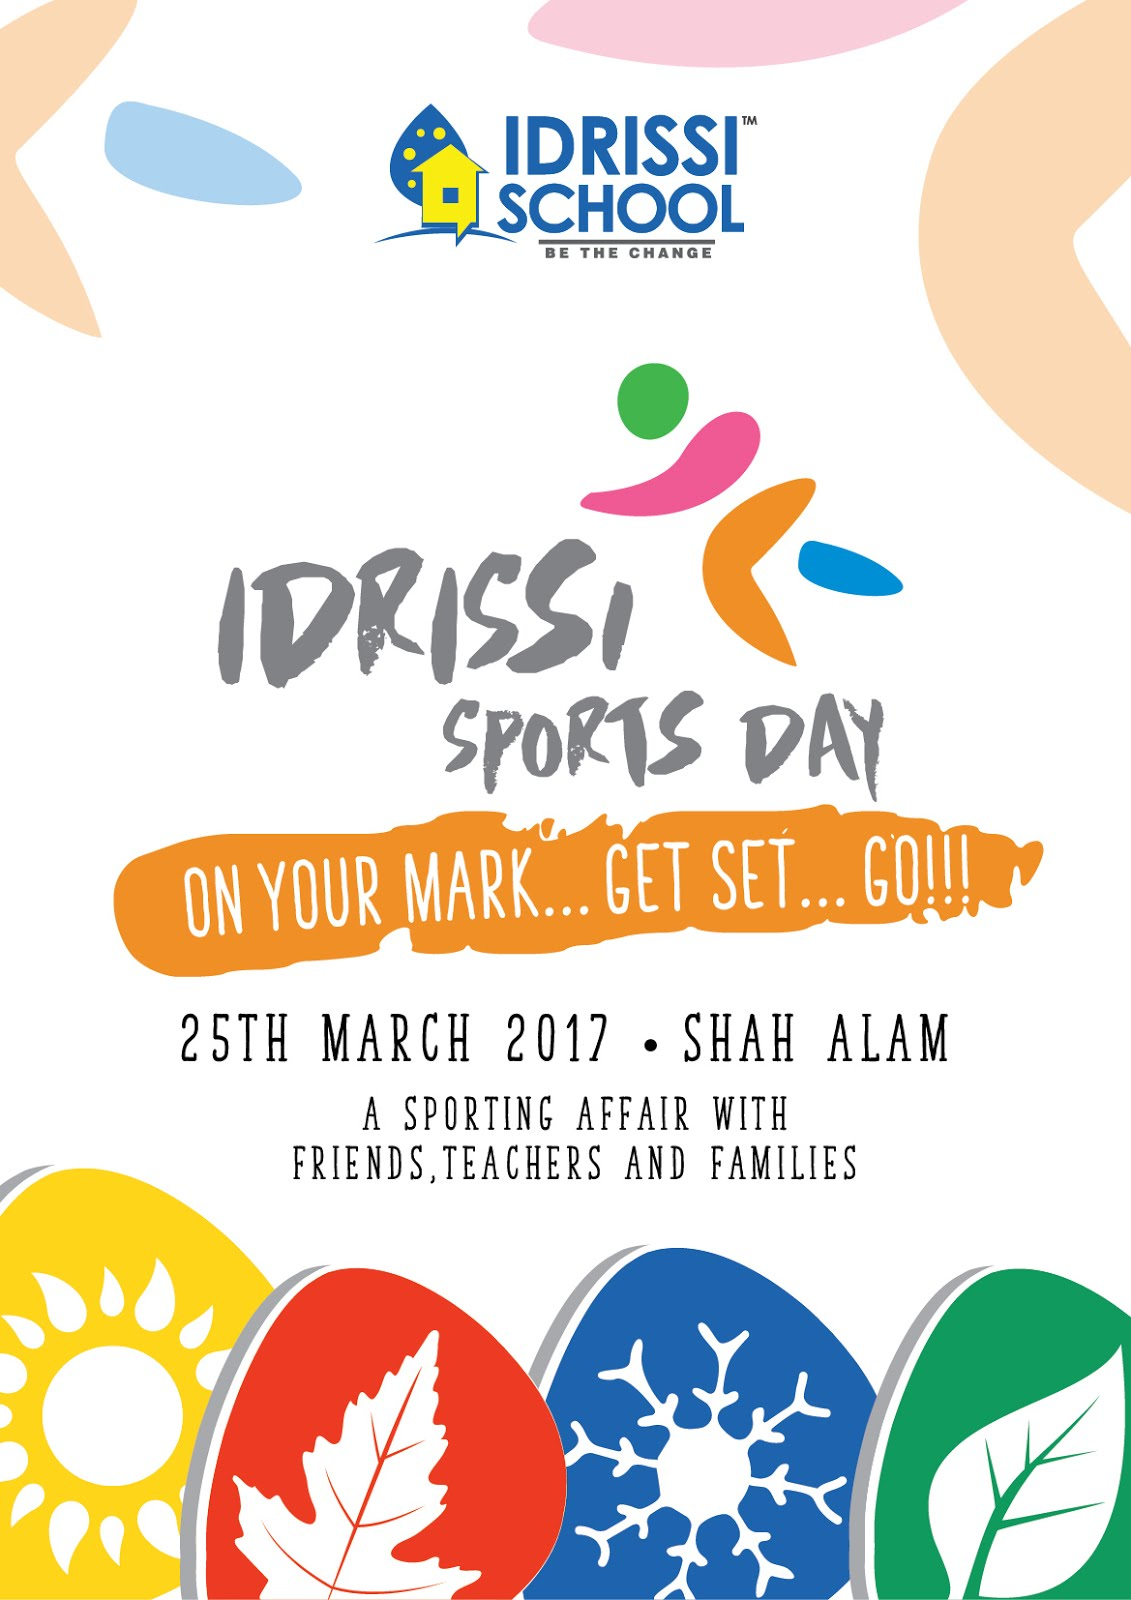 sports day poster template - idrissi international school our very first sports day